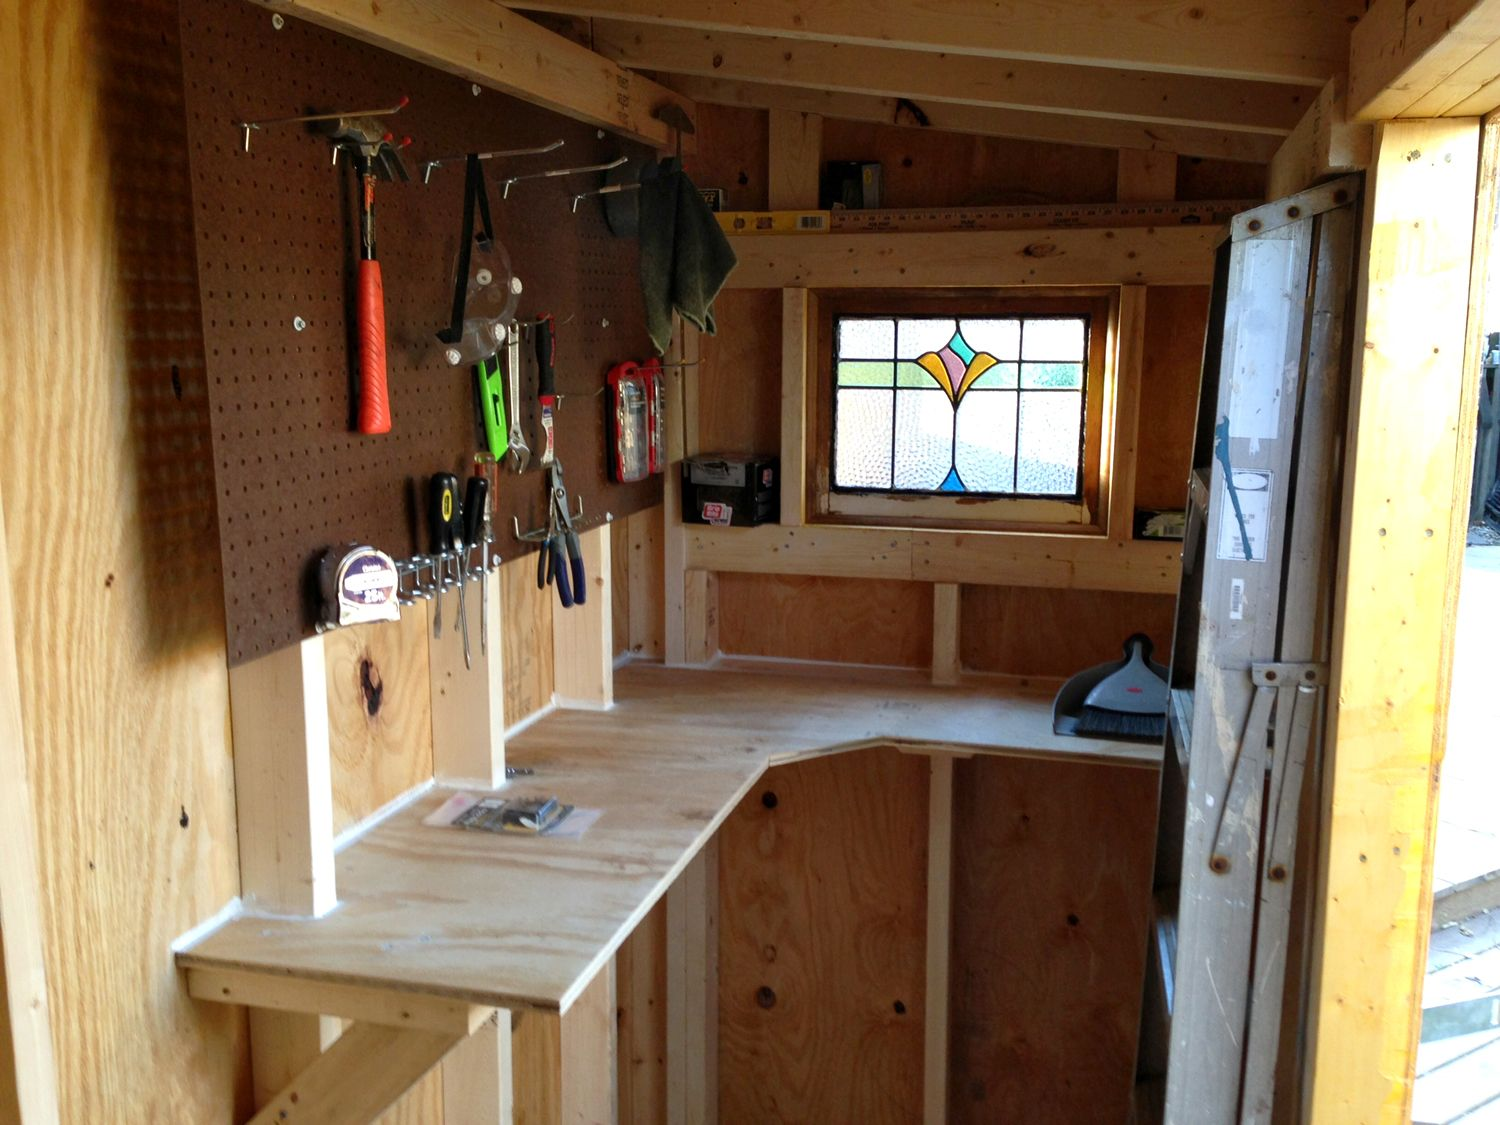 Sturdy Workbench And Peg Board To Maximize Small Space In